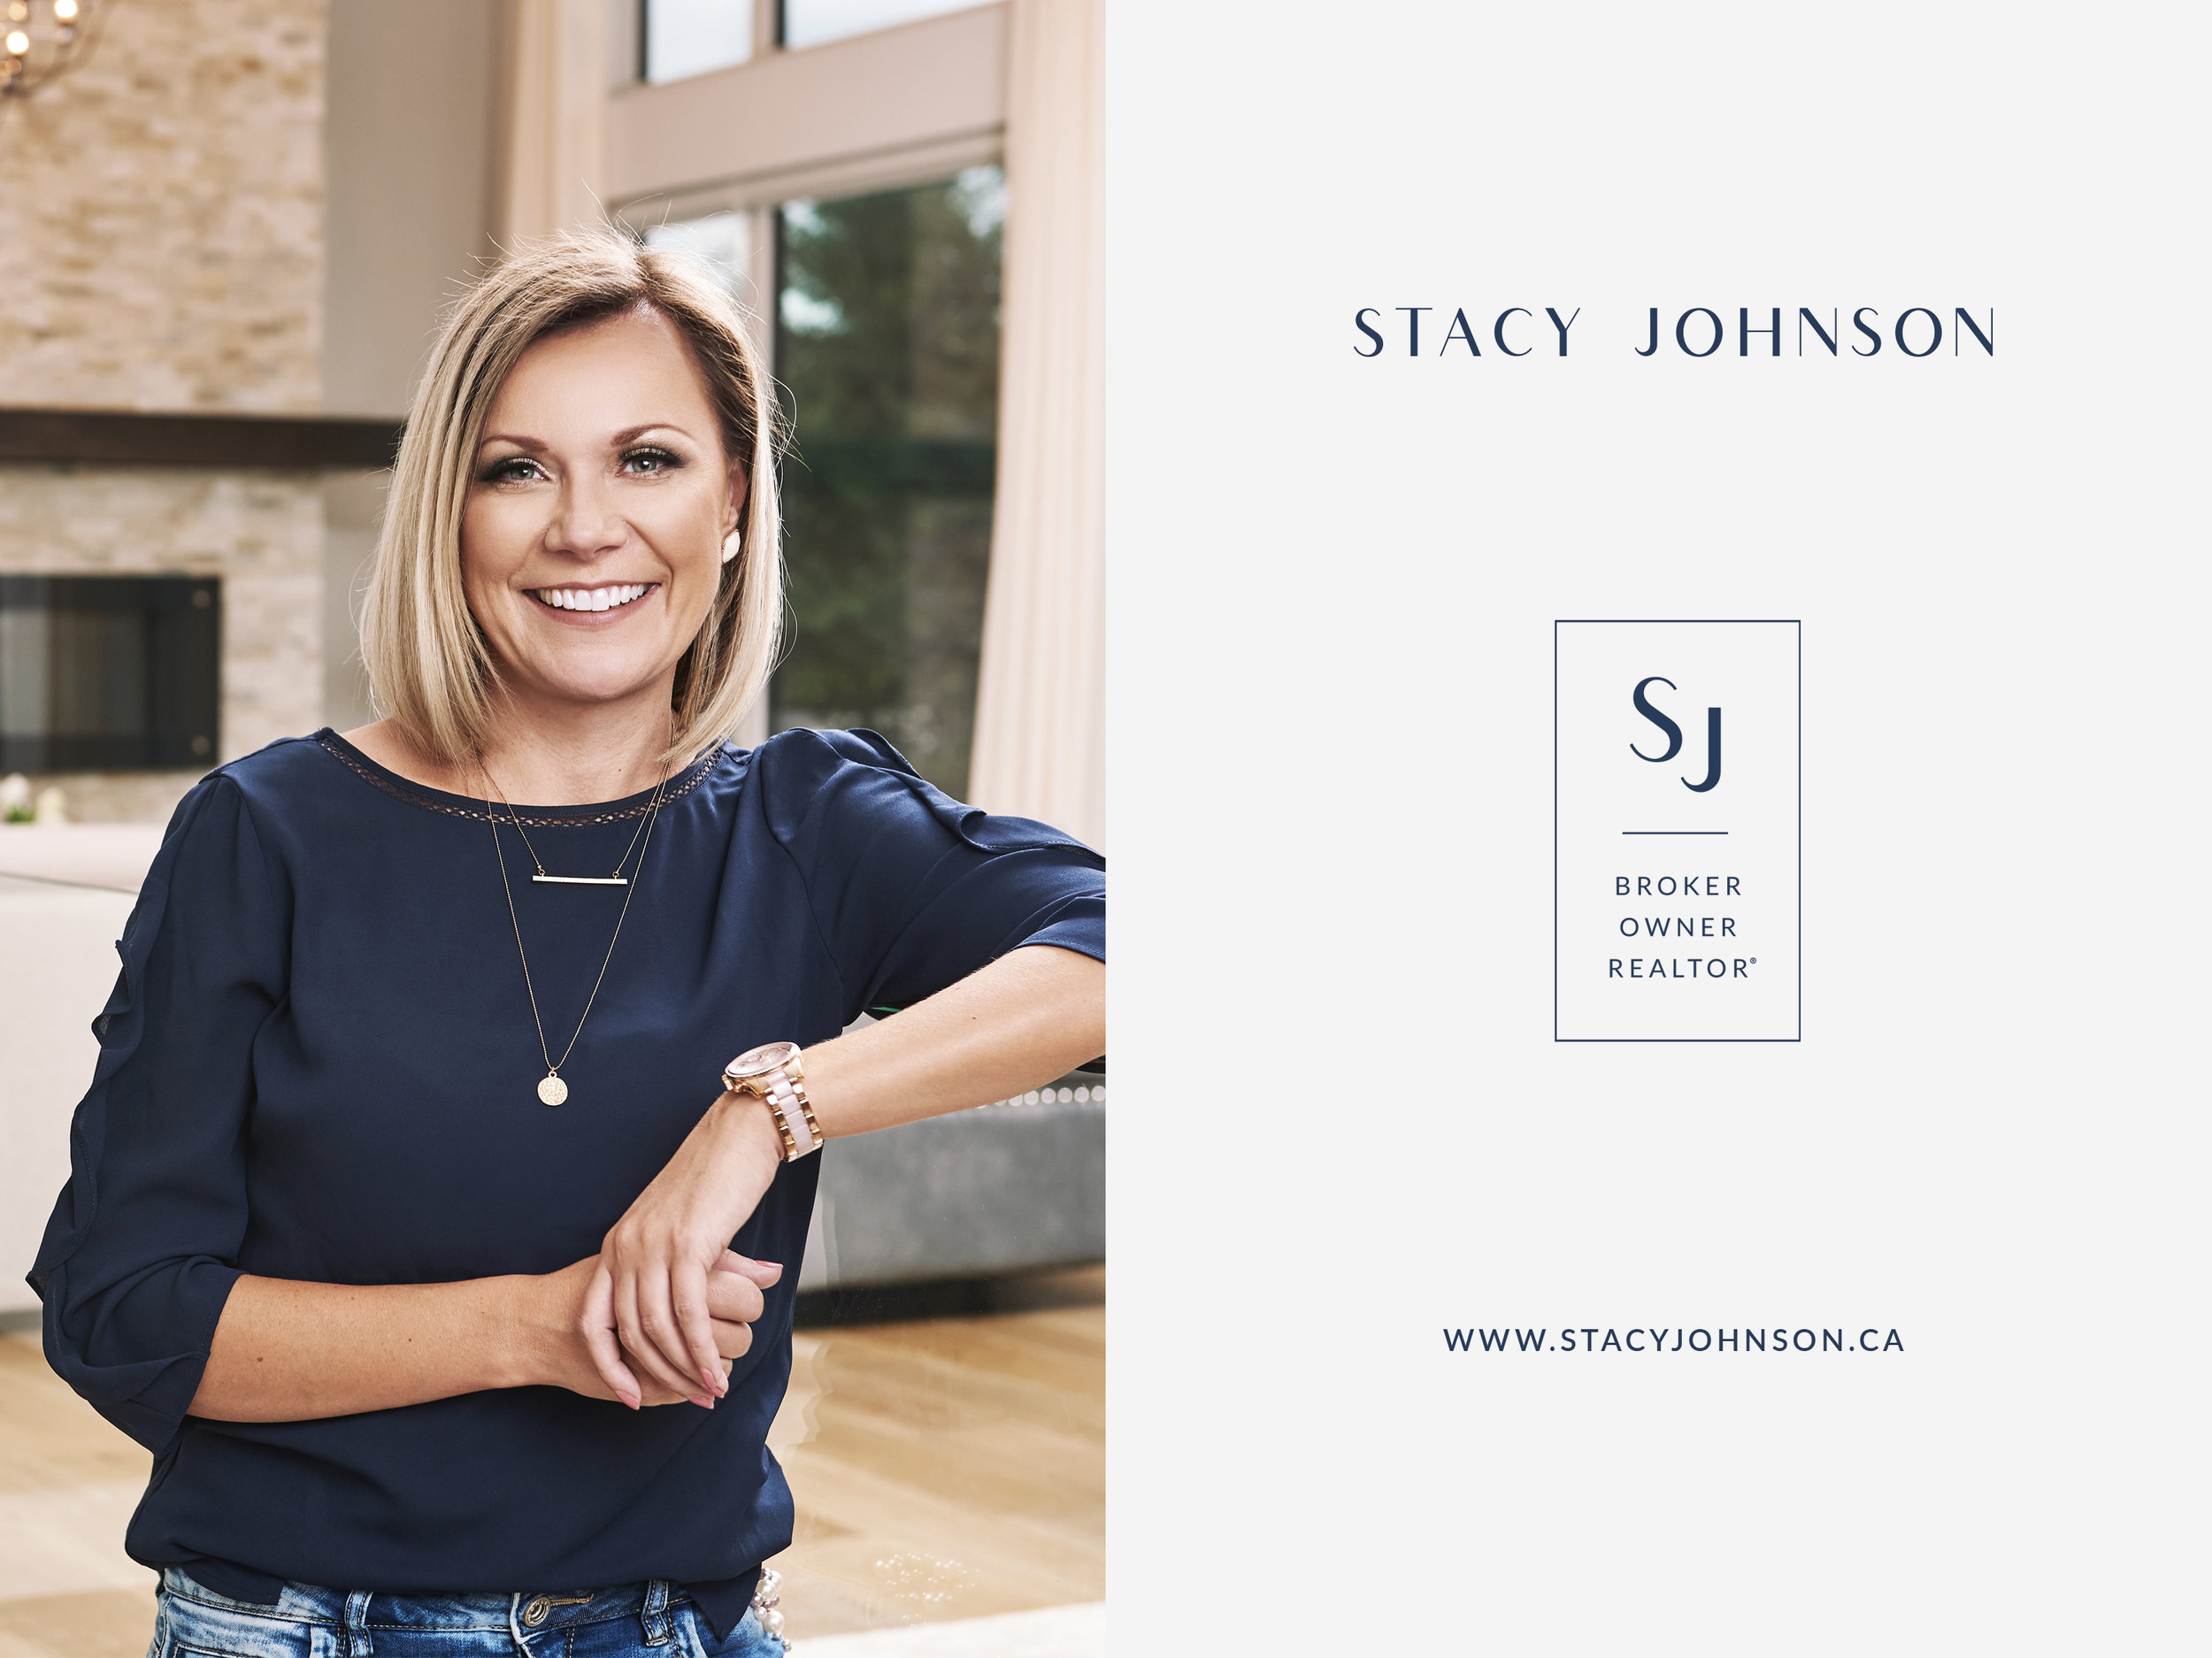 stacy-johnson-branding-design-logo-clover-and-crow